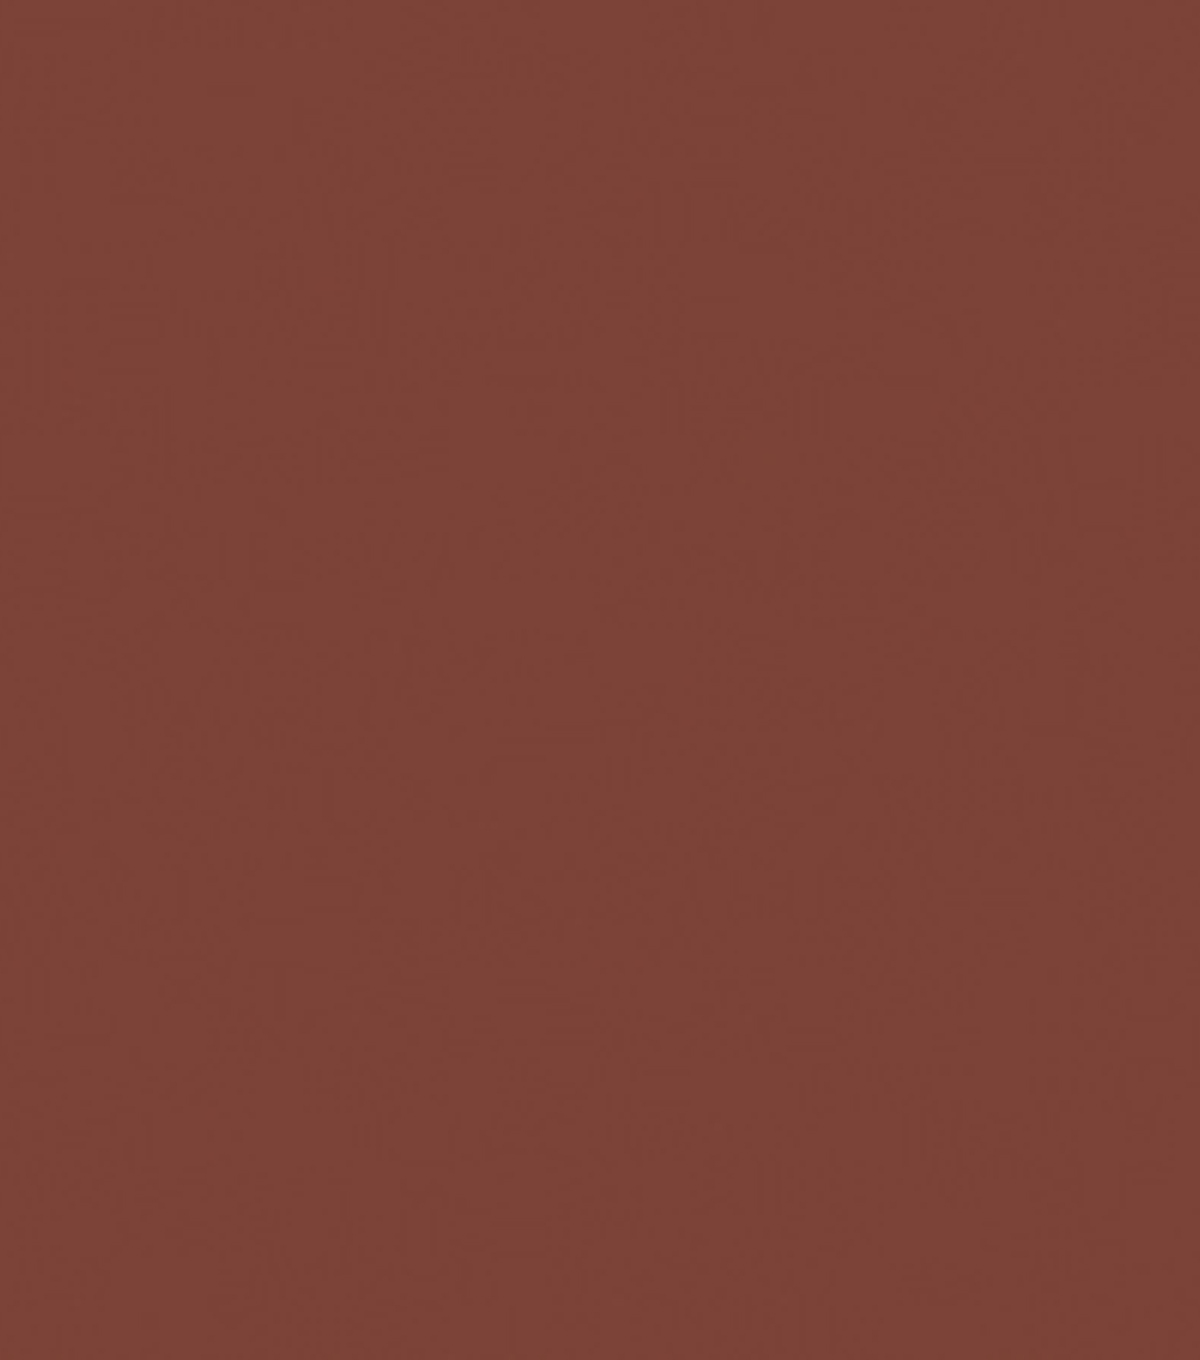 Delta Ceramcoat Acrylic Paint 2 oz, Candy Bar Brown